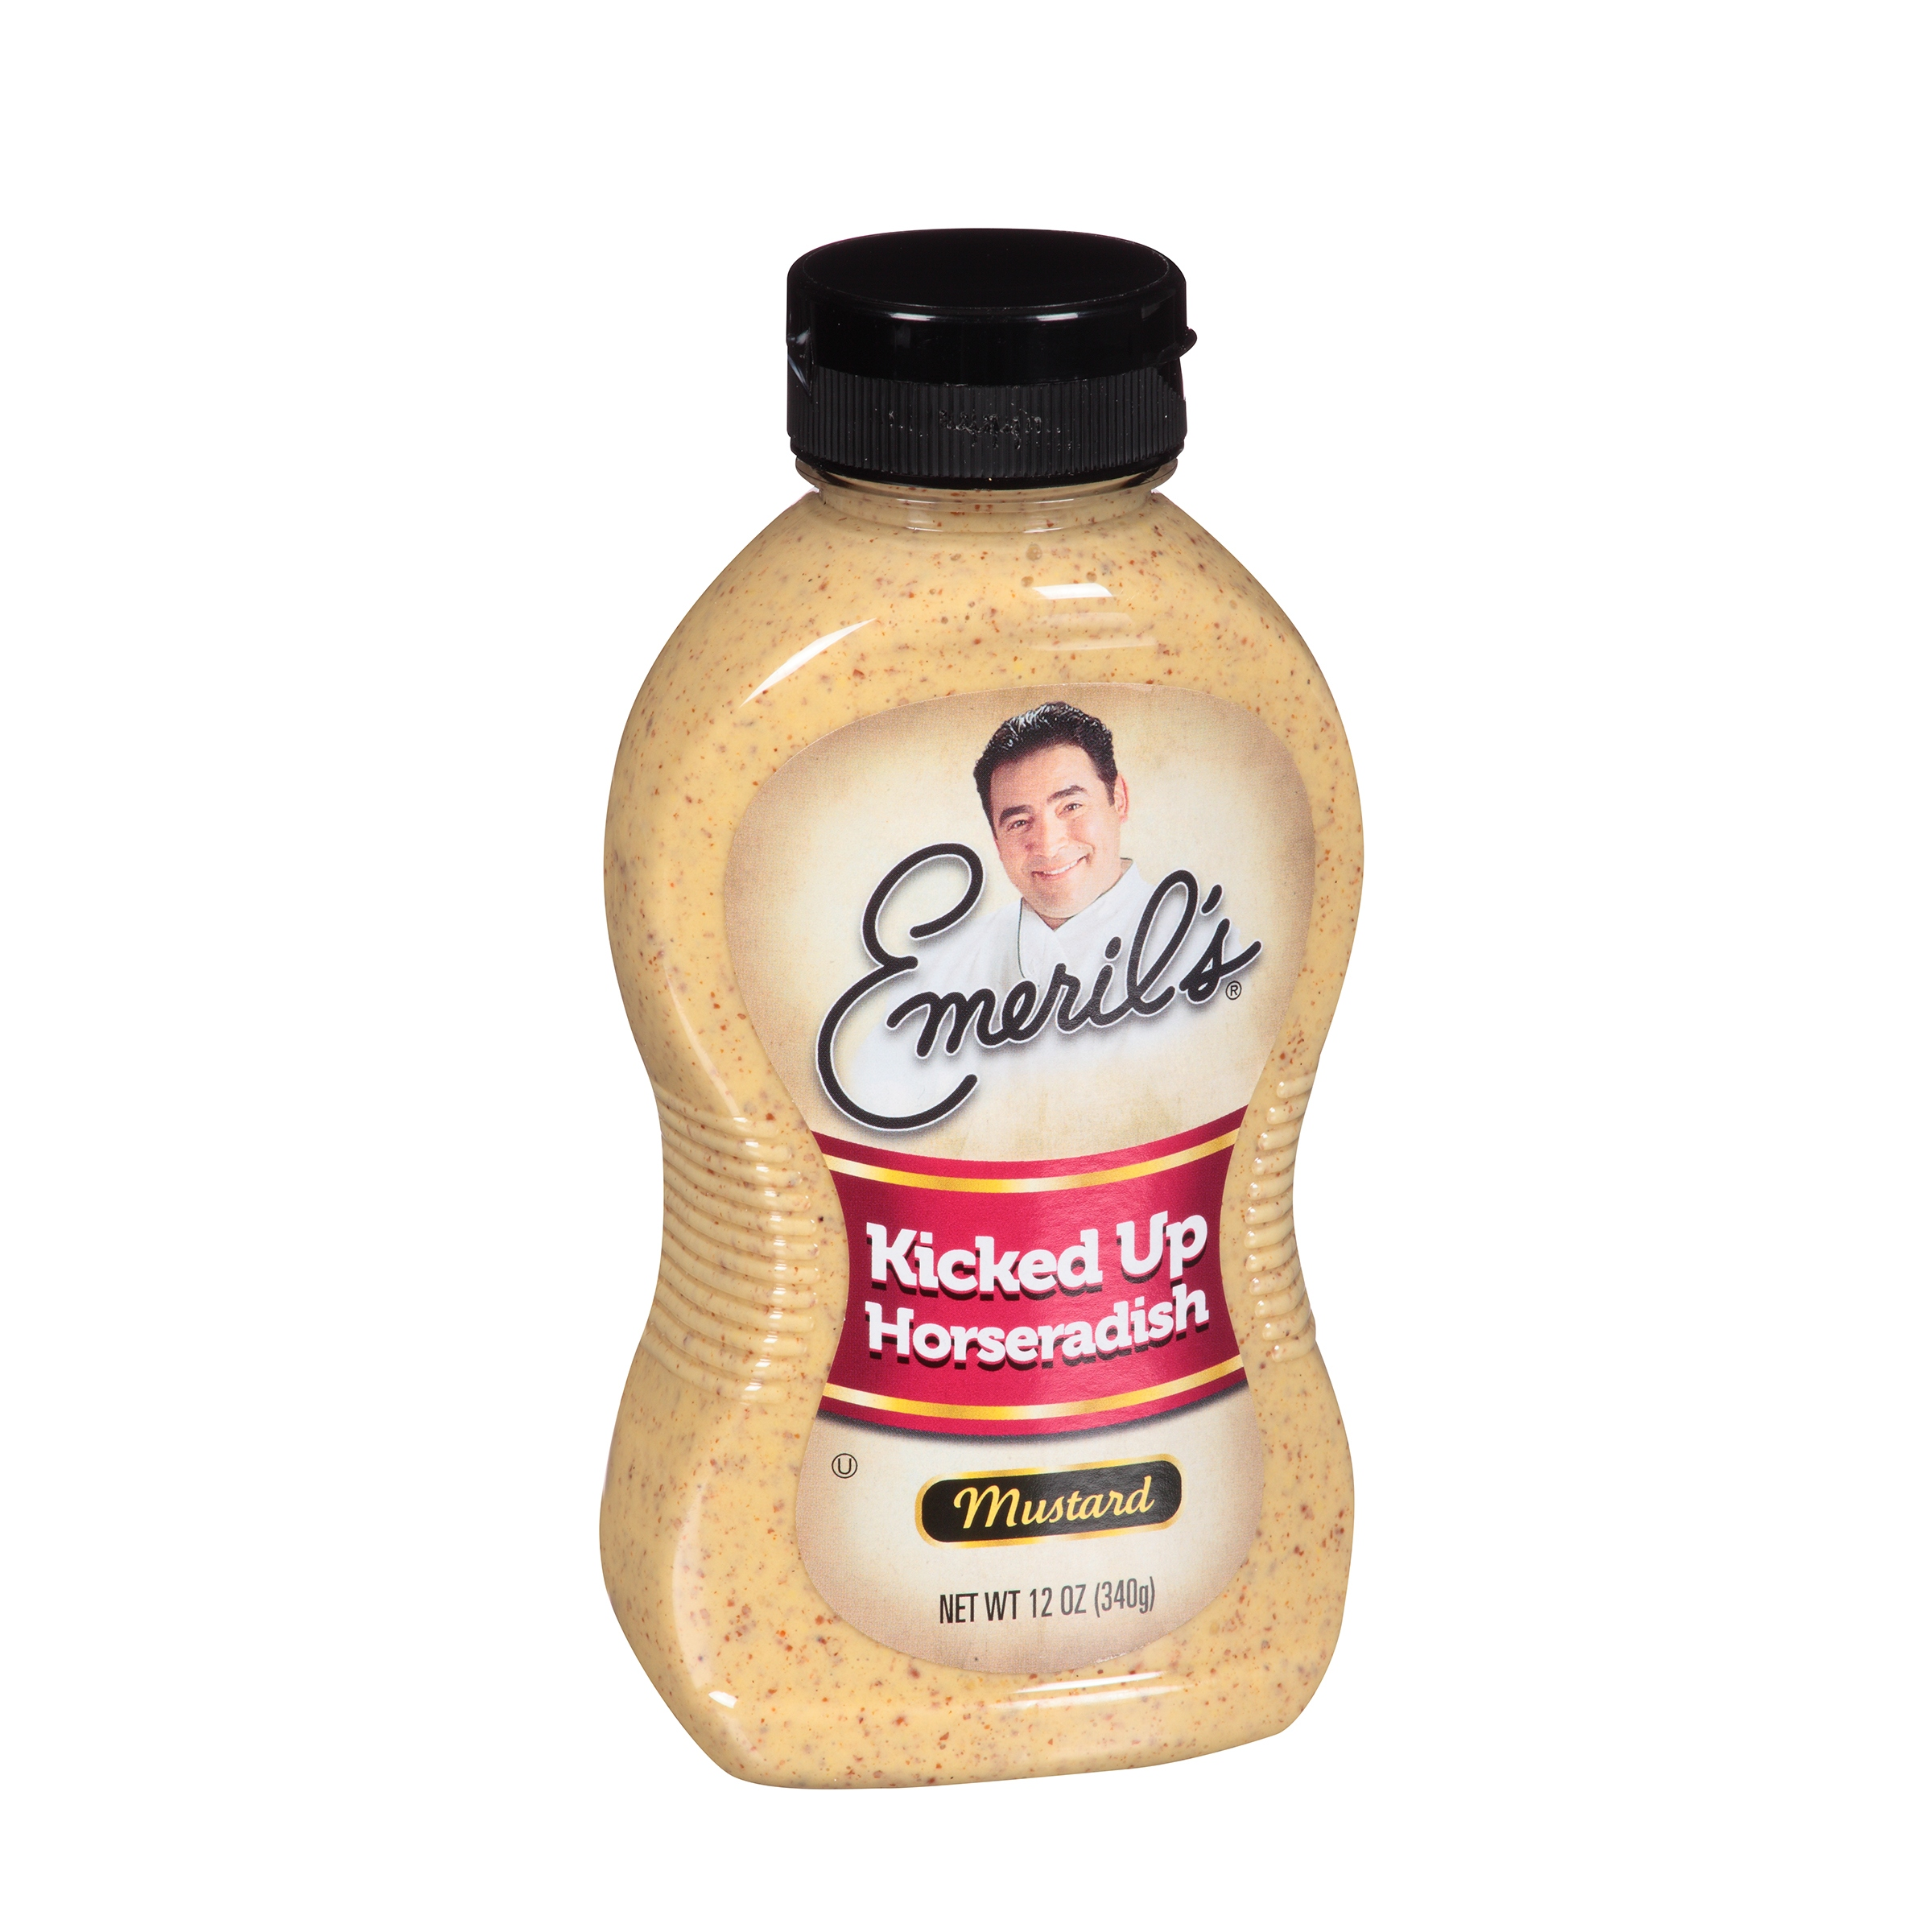 Emeril's Kicked Up Horseradish Mustard, 12 Oz by B&G Foods, Inc.